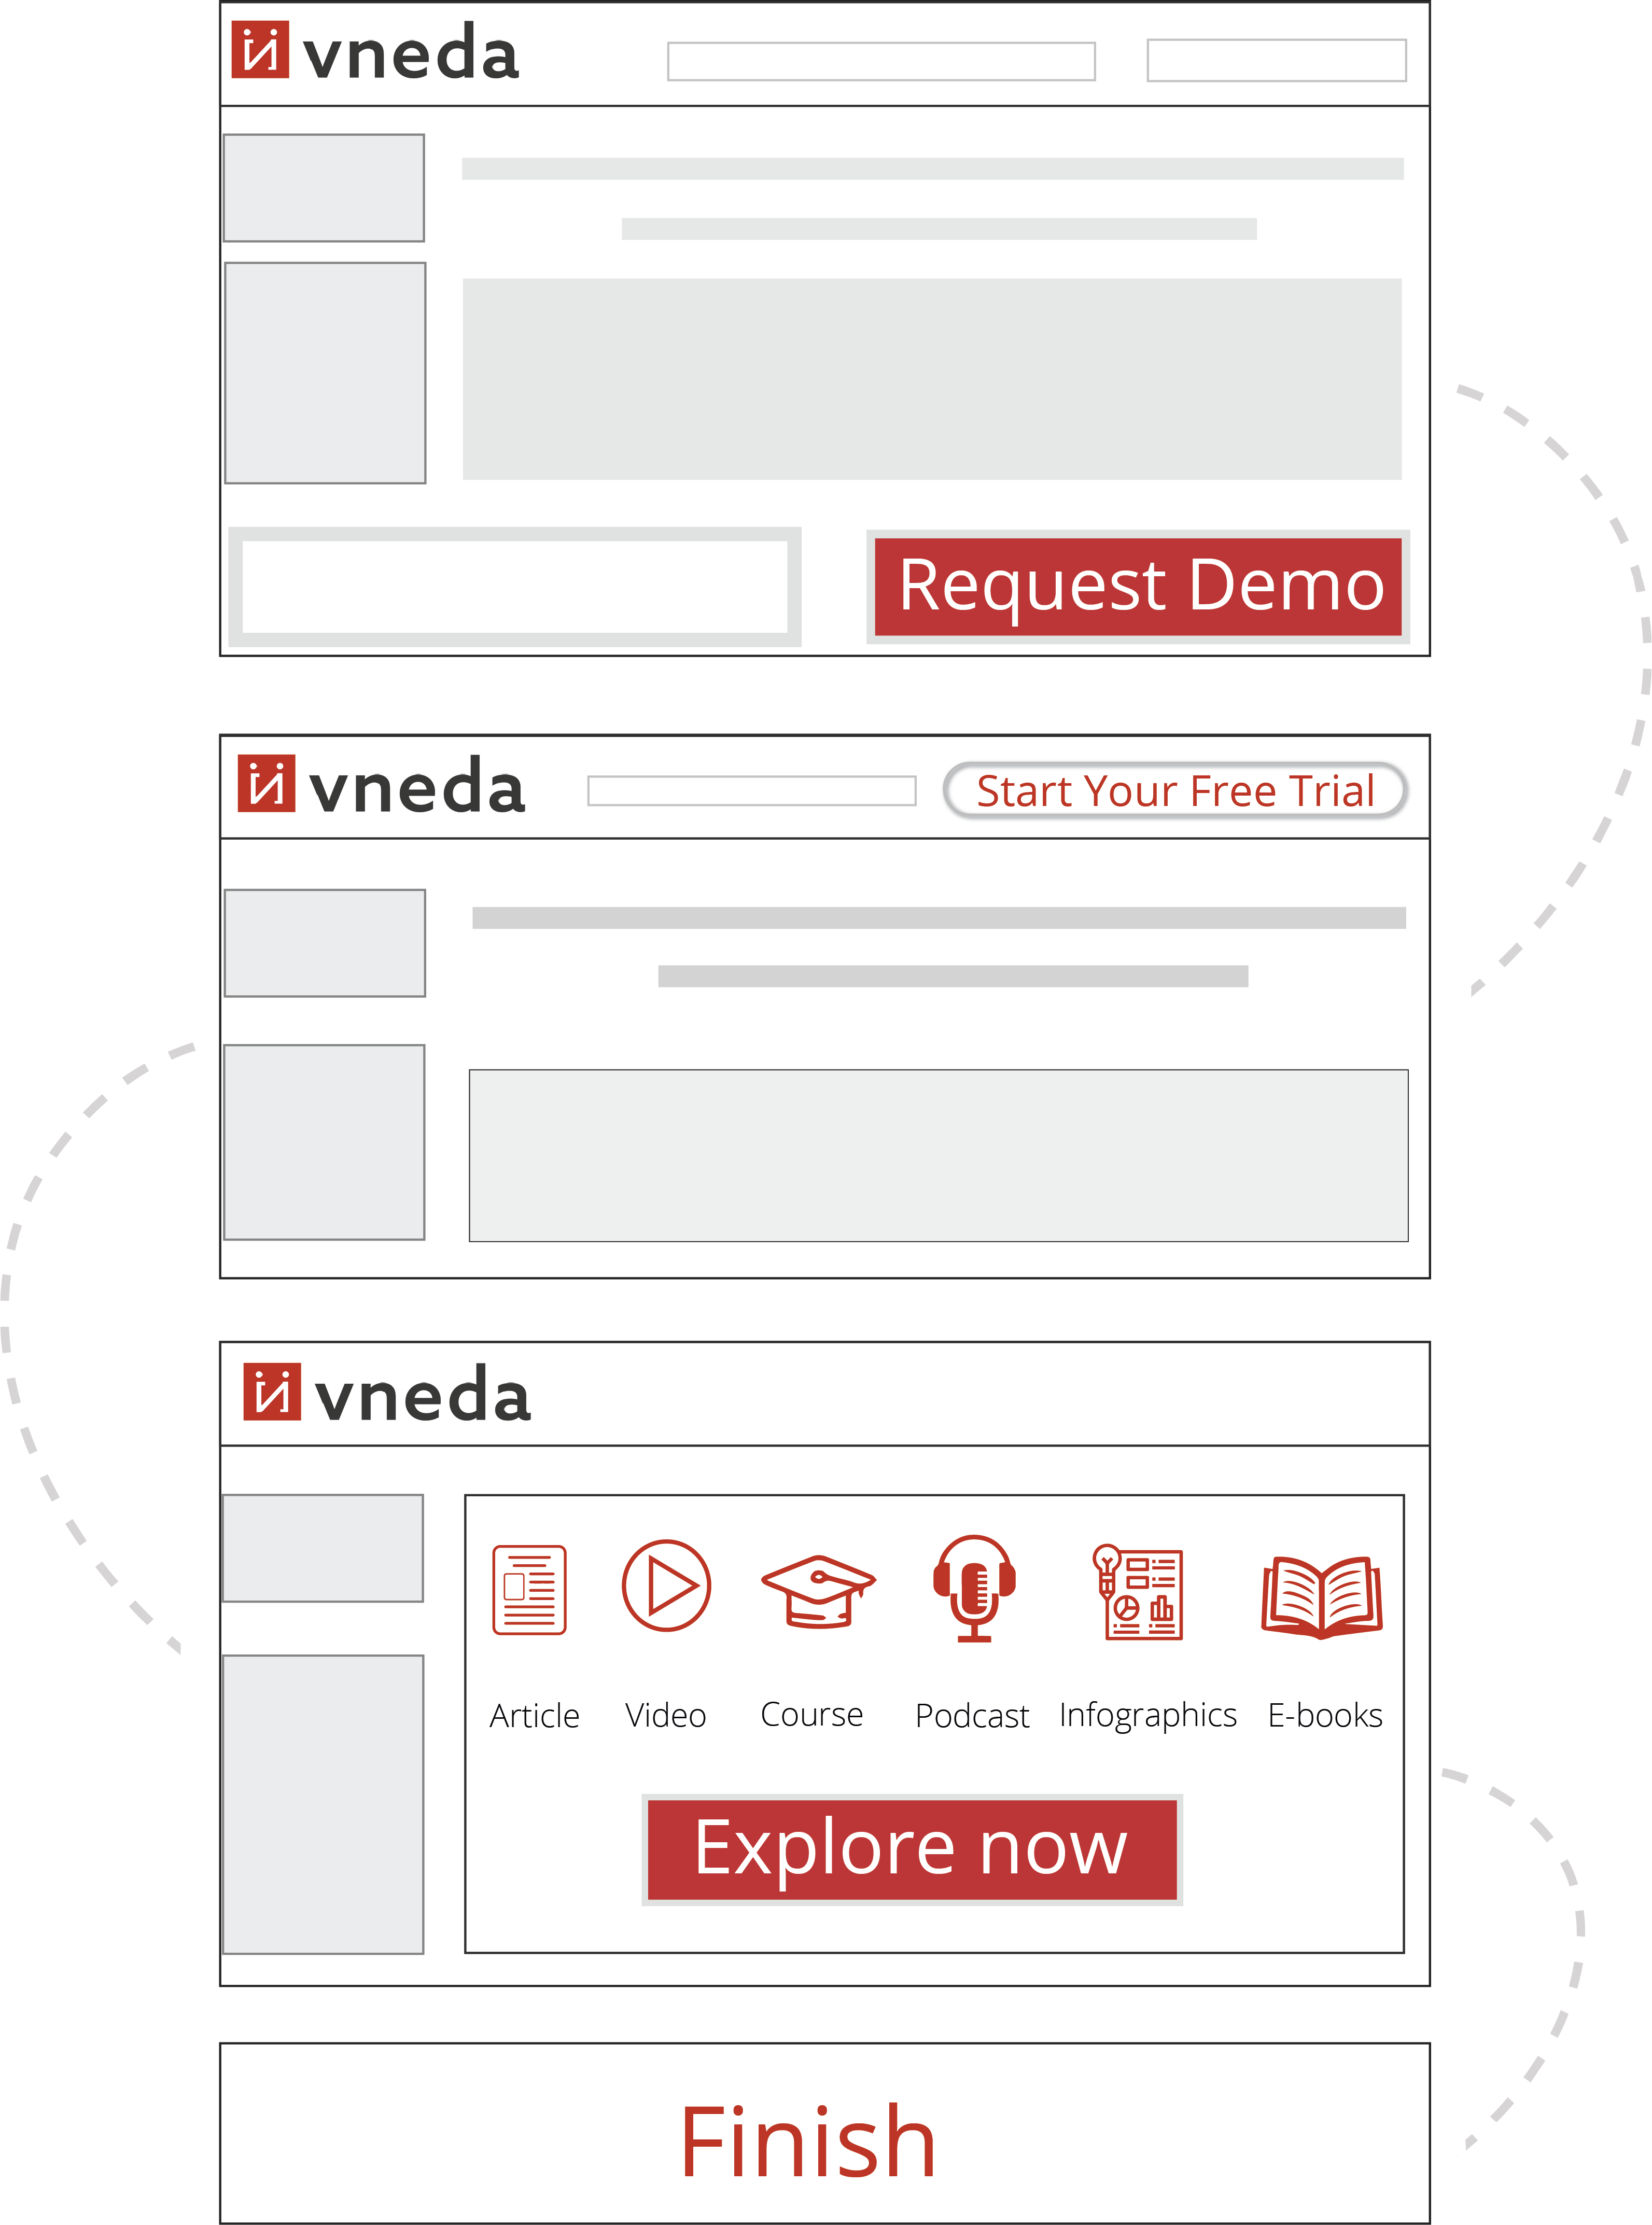 Screenshot of Vneda Request Demo page with step by step description for free trial.